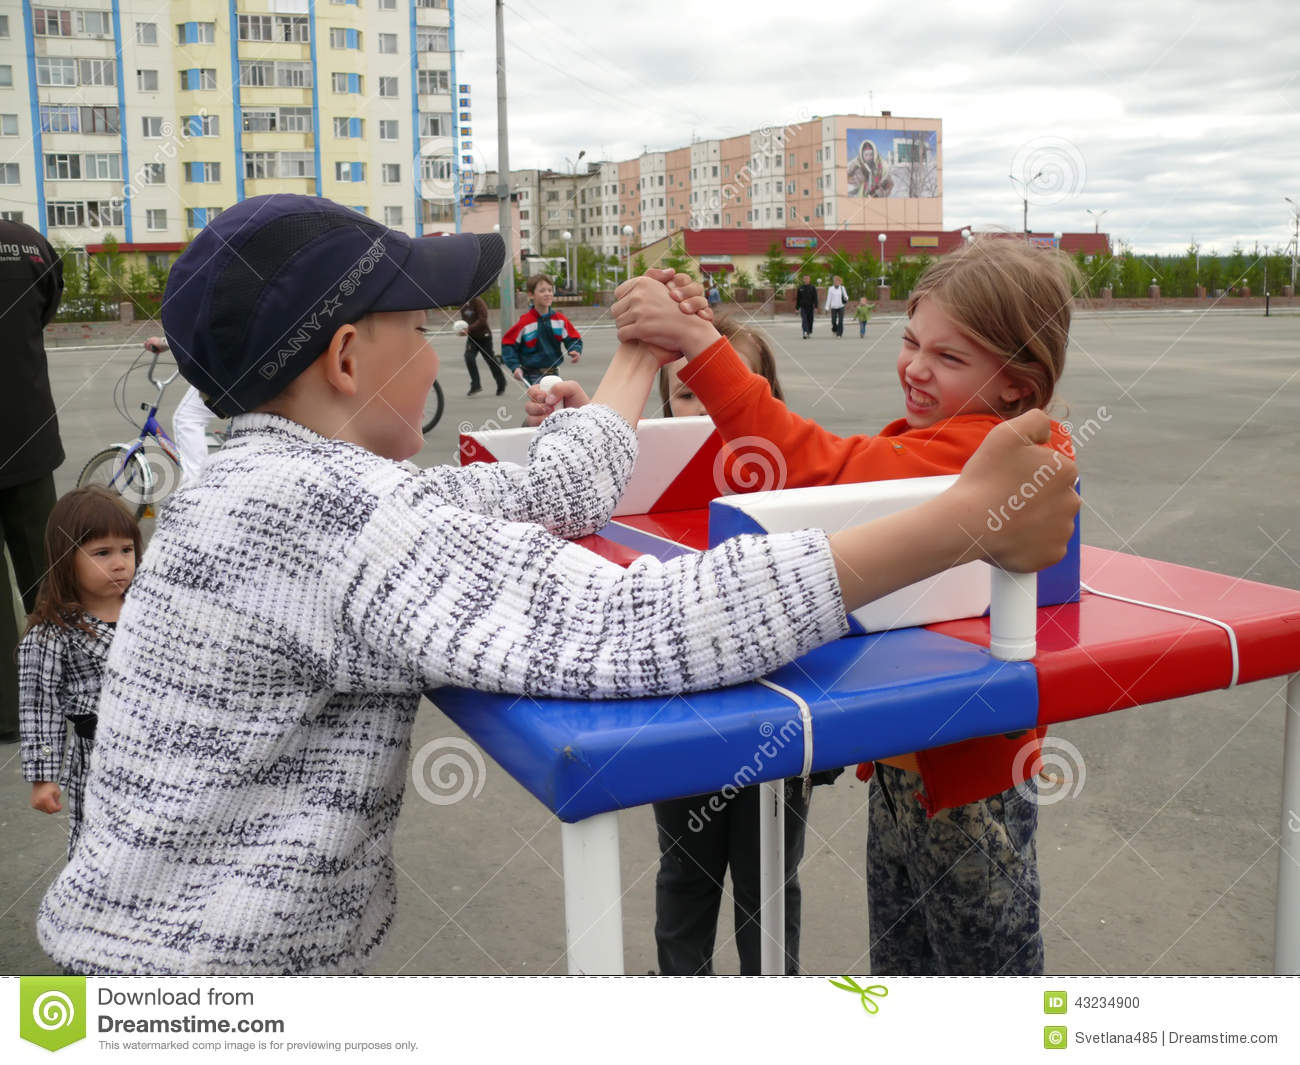 Nadym, Russia - June 28, 2008: Competitions on arm-wrestling. St